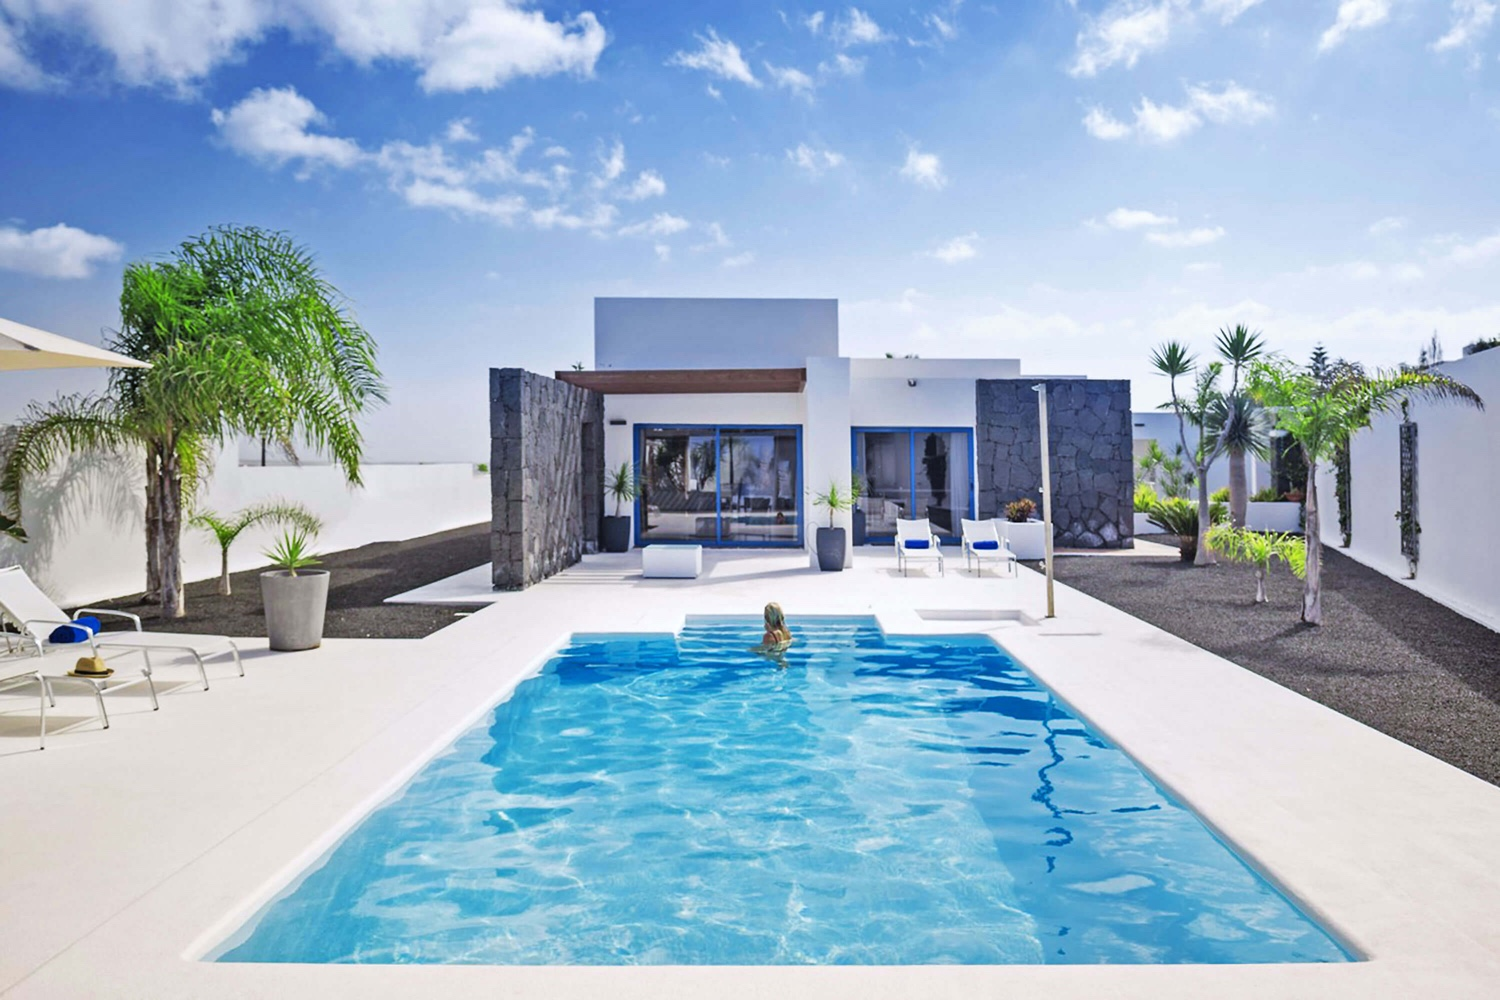 Magnificent 3 bedroom villa with beautiful views, private heated pool, at the foot of a volcano and near the center of Playa Blanca.